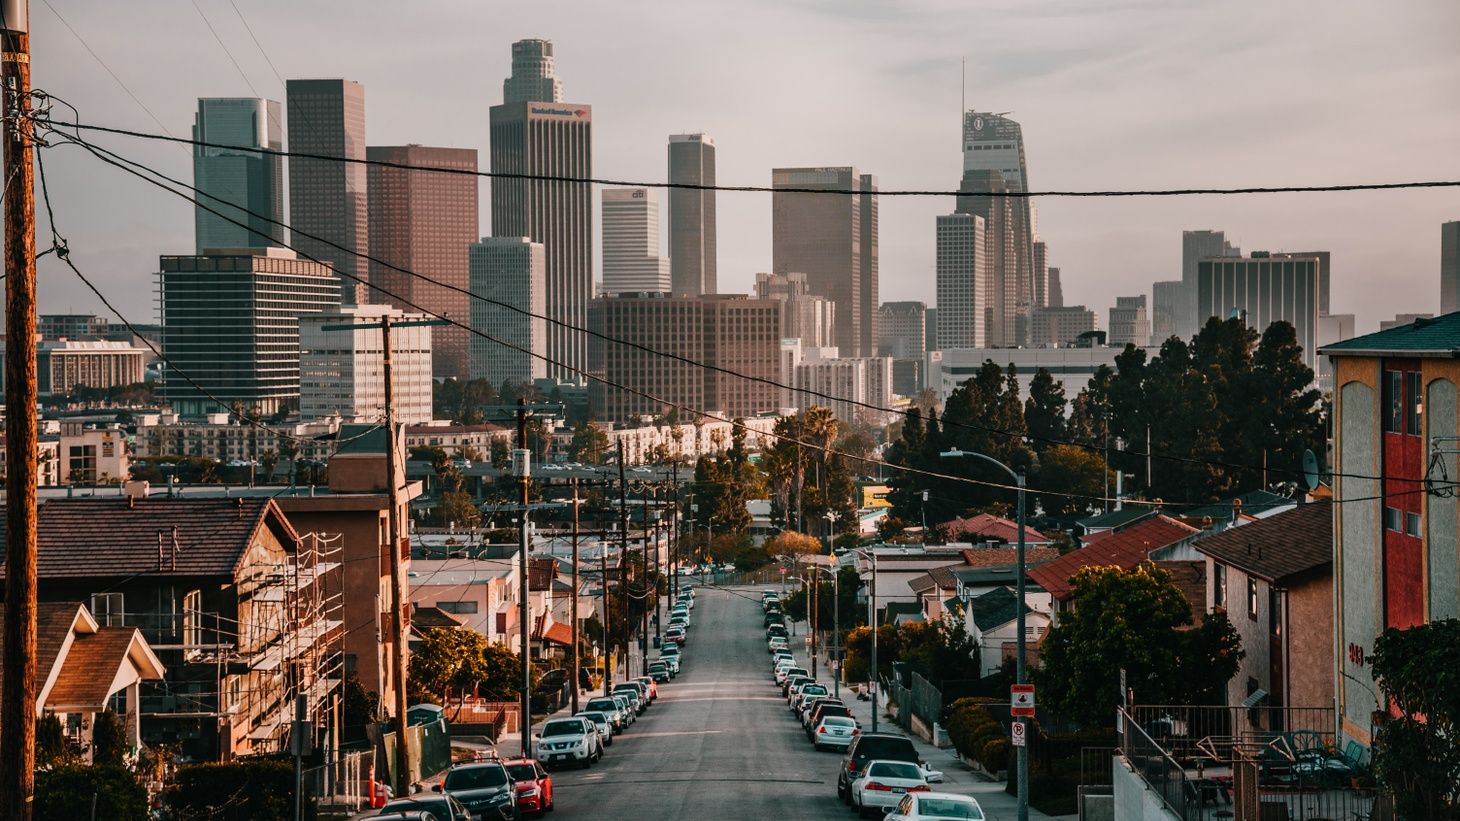 More than 10,000 homes in LA County are likely to lose their affordability restrictions in the next decade, according to a new report from the nonpartisan nonprofit California Housing Partnership.